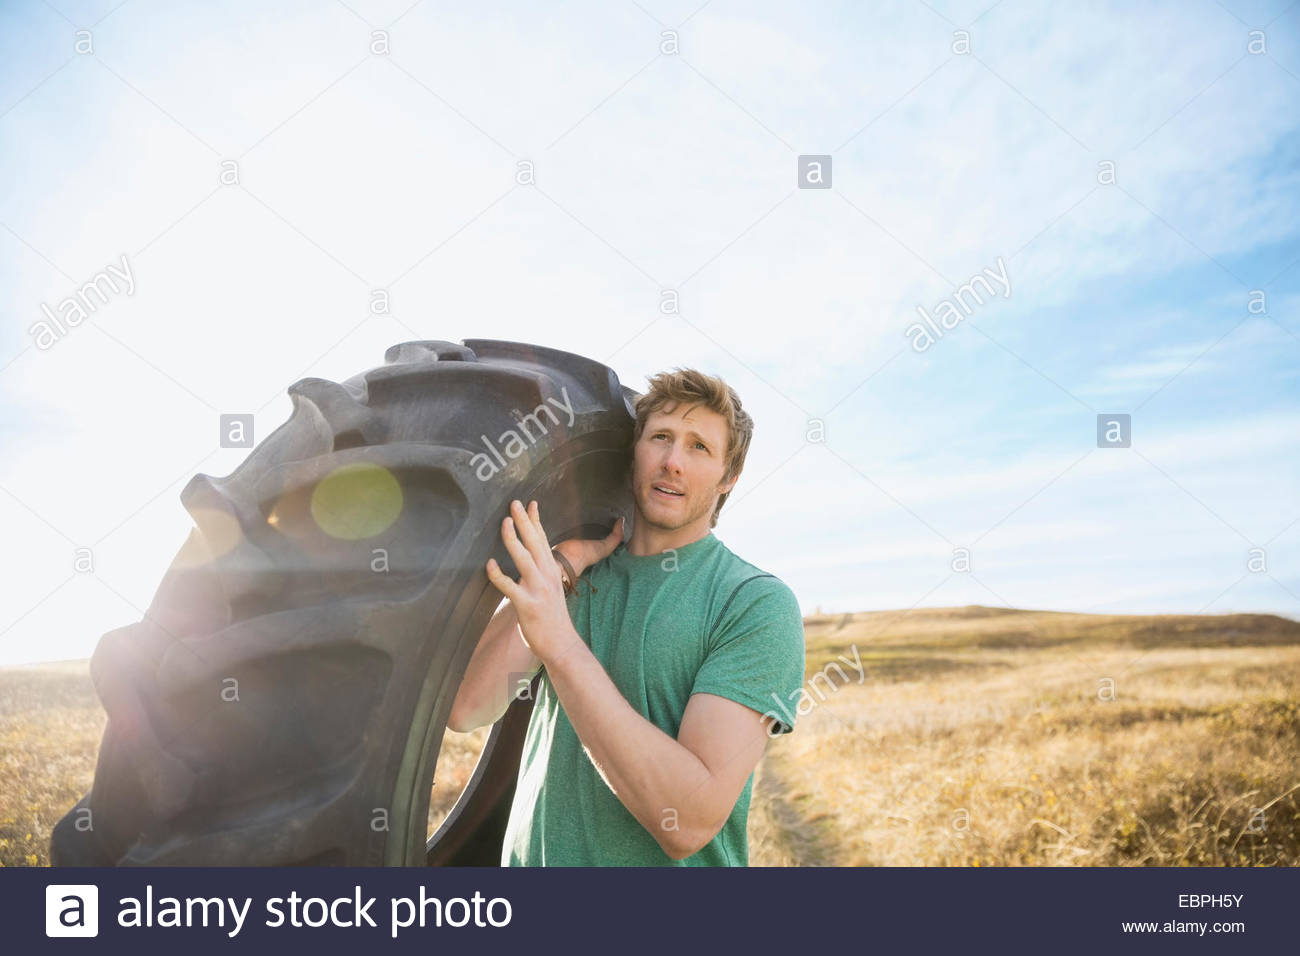 Man carrying crossfit tire in sunny rural field - Stock Image